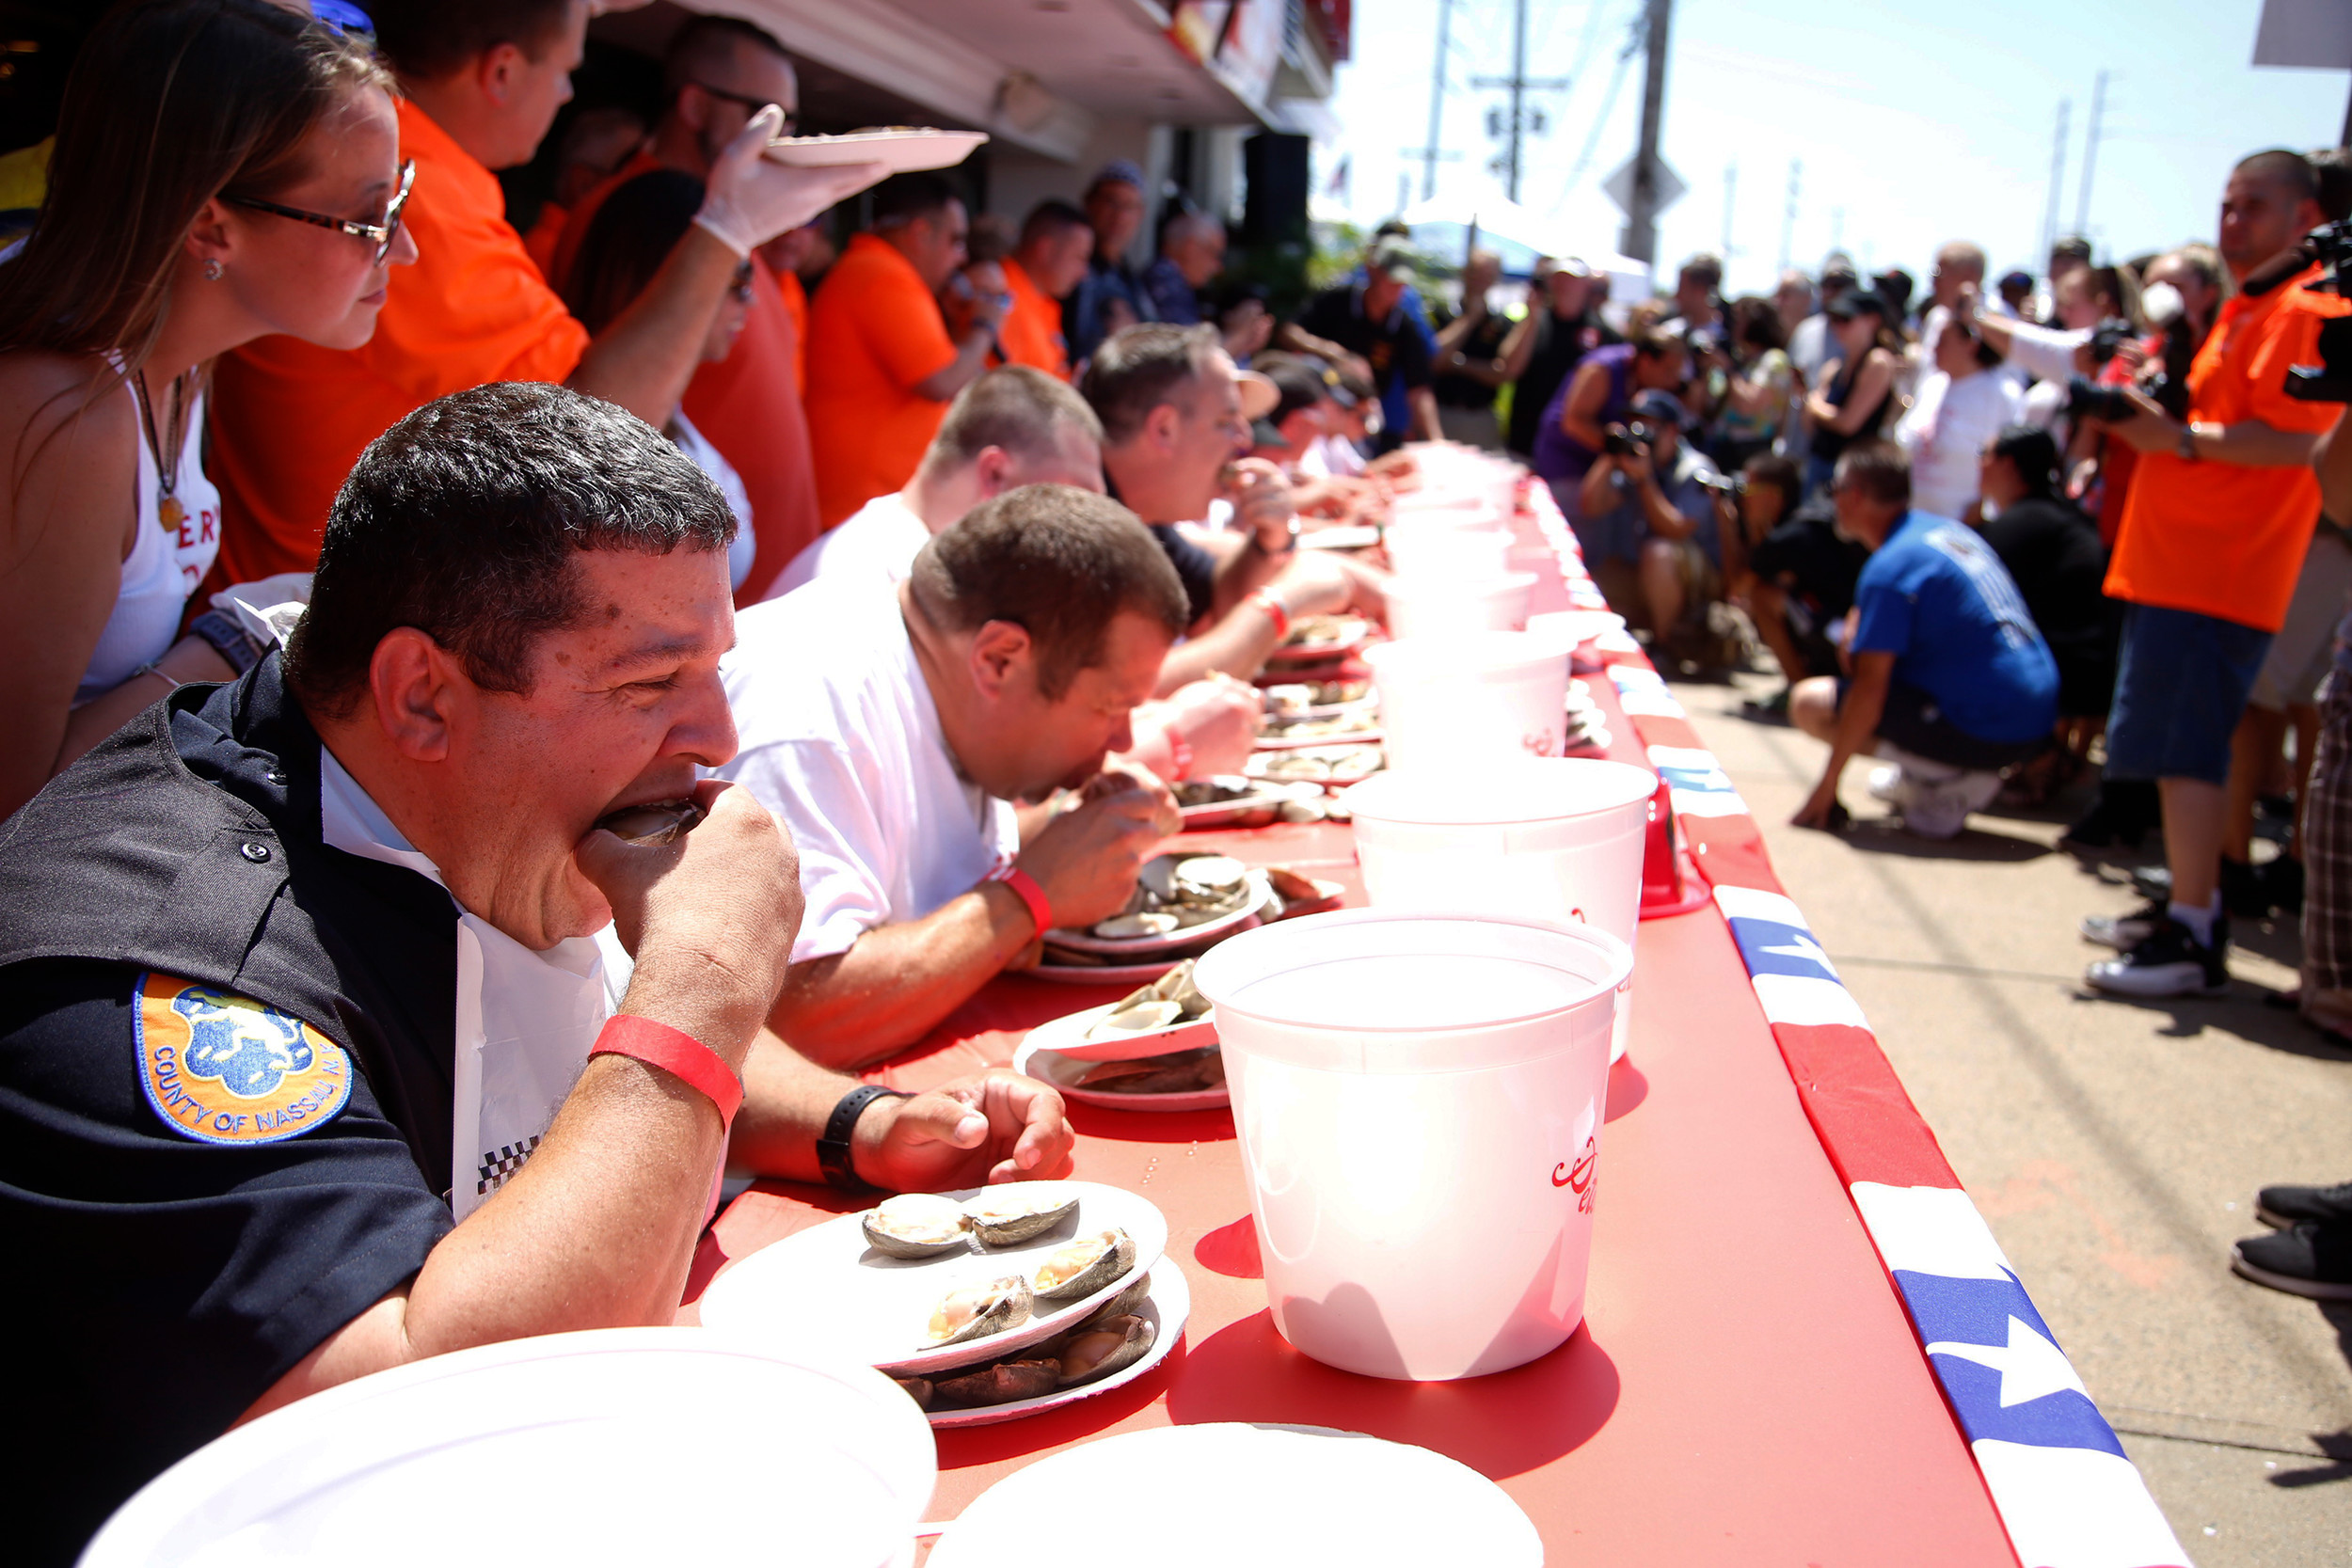 Local firefighters came to Peter's Clam Bar in Island Park on July 16 to compete in the annual Long Island Clam Eating Contest.